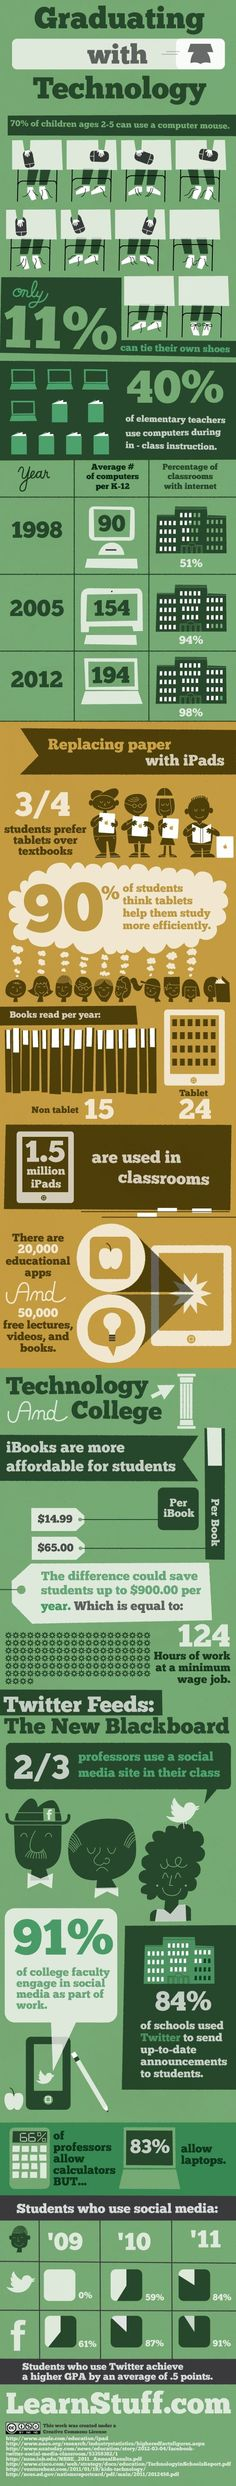 Educational infographic : Graduating with technology (infographic)  EdTech Times